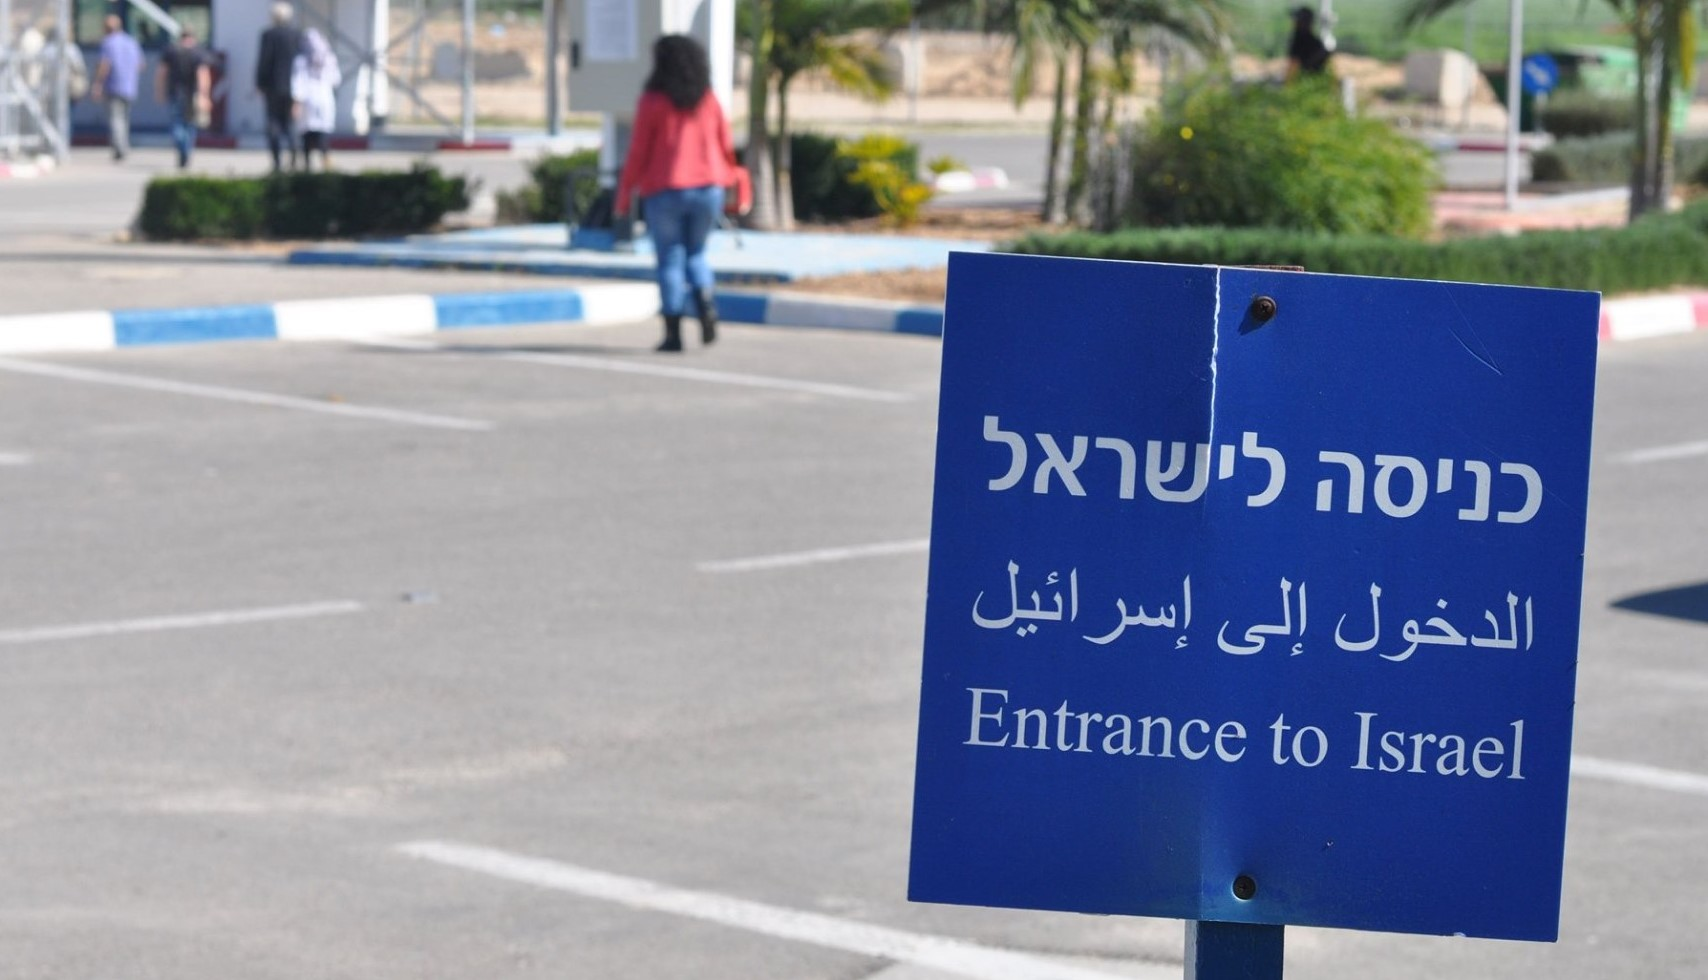 The Erez Crossing between Israel and the Gaza Strip